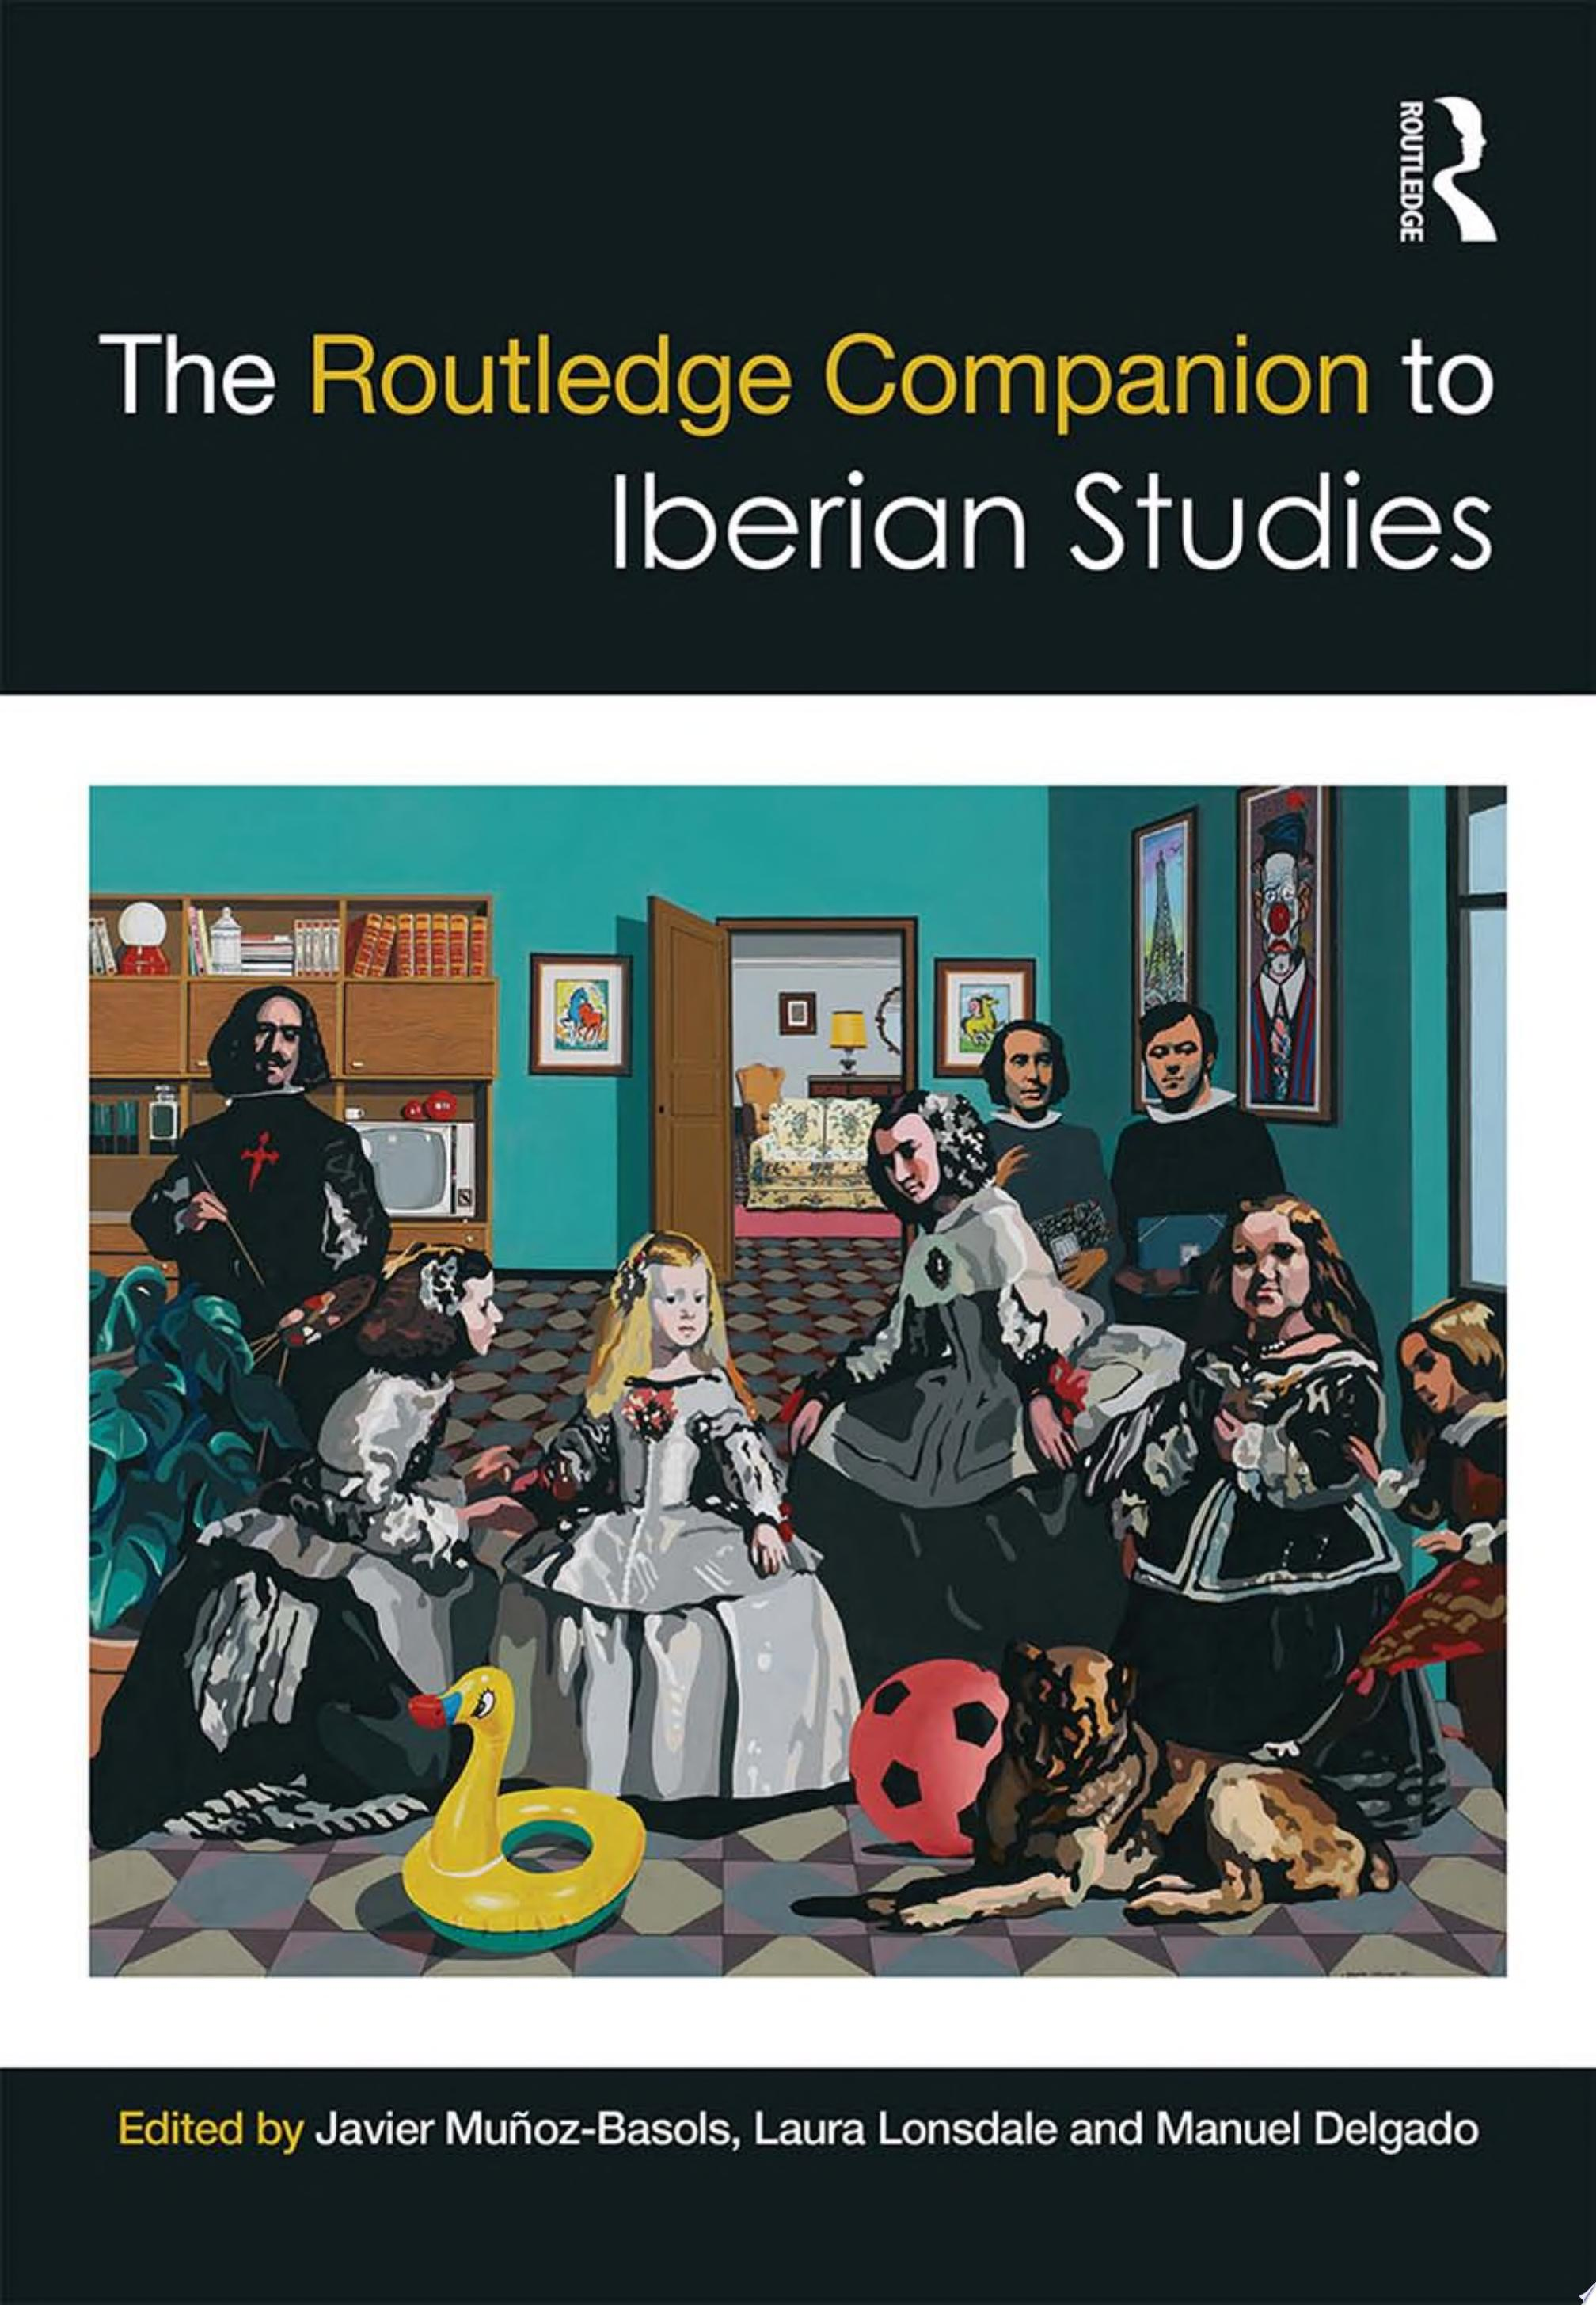 The Routledge Companion to Iberian Studies